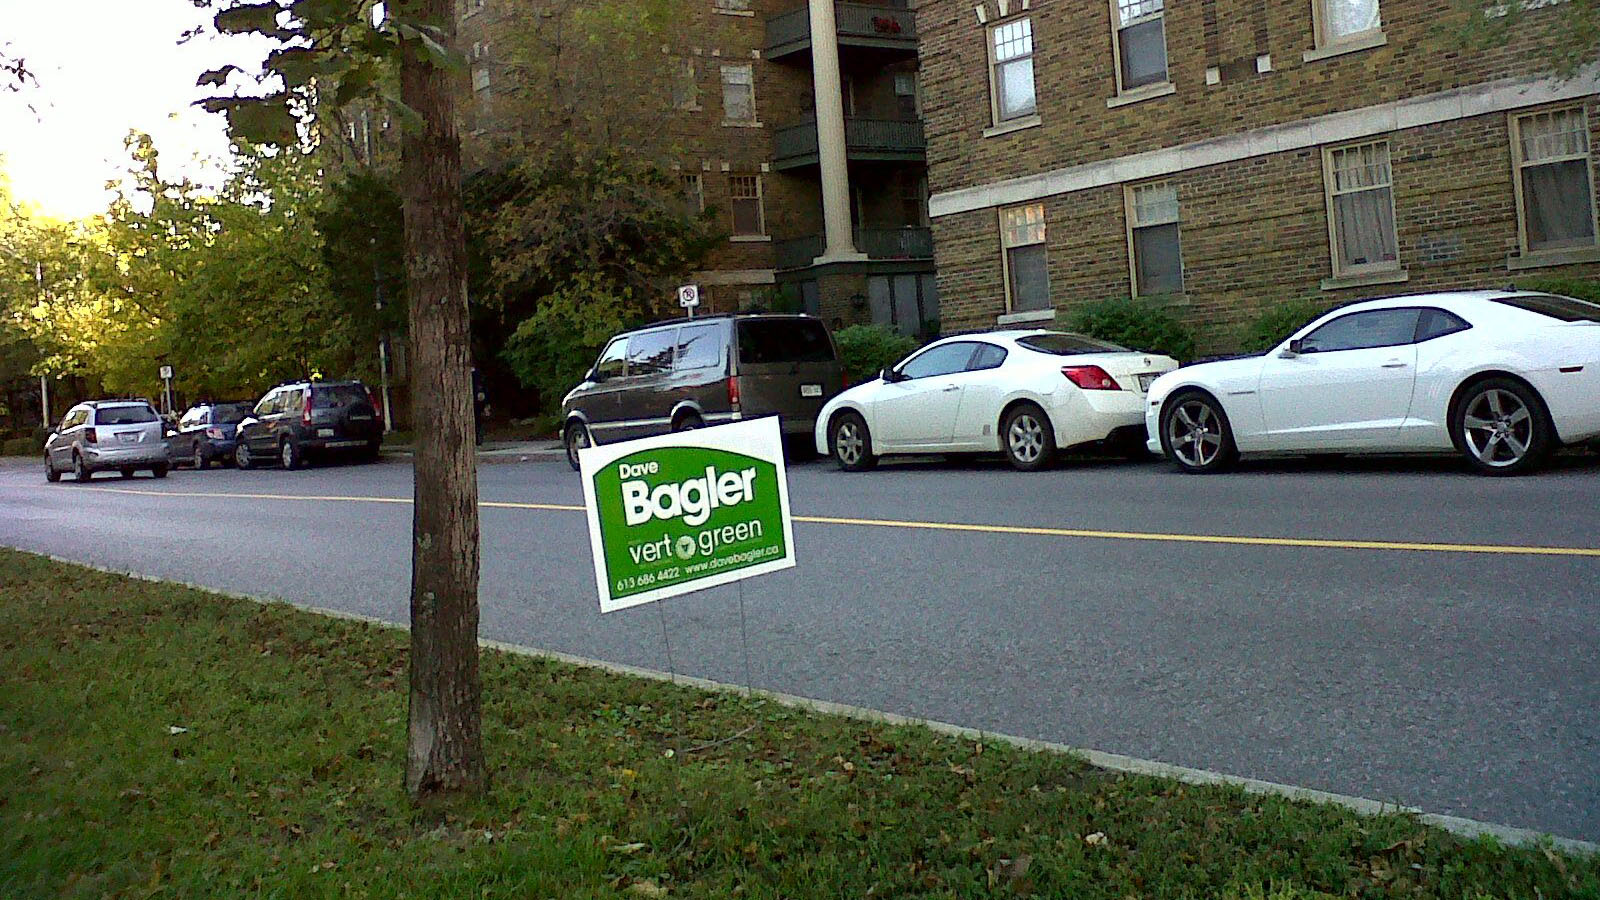 A Dave Bagler lawn sign next to the street.